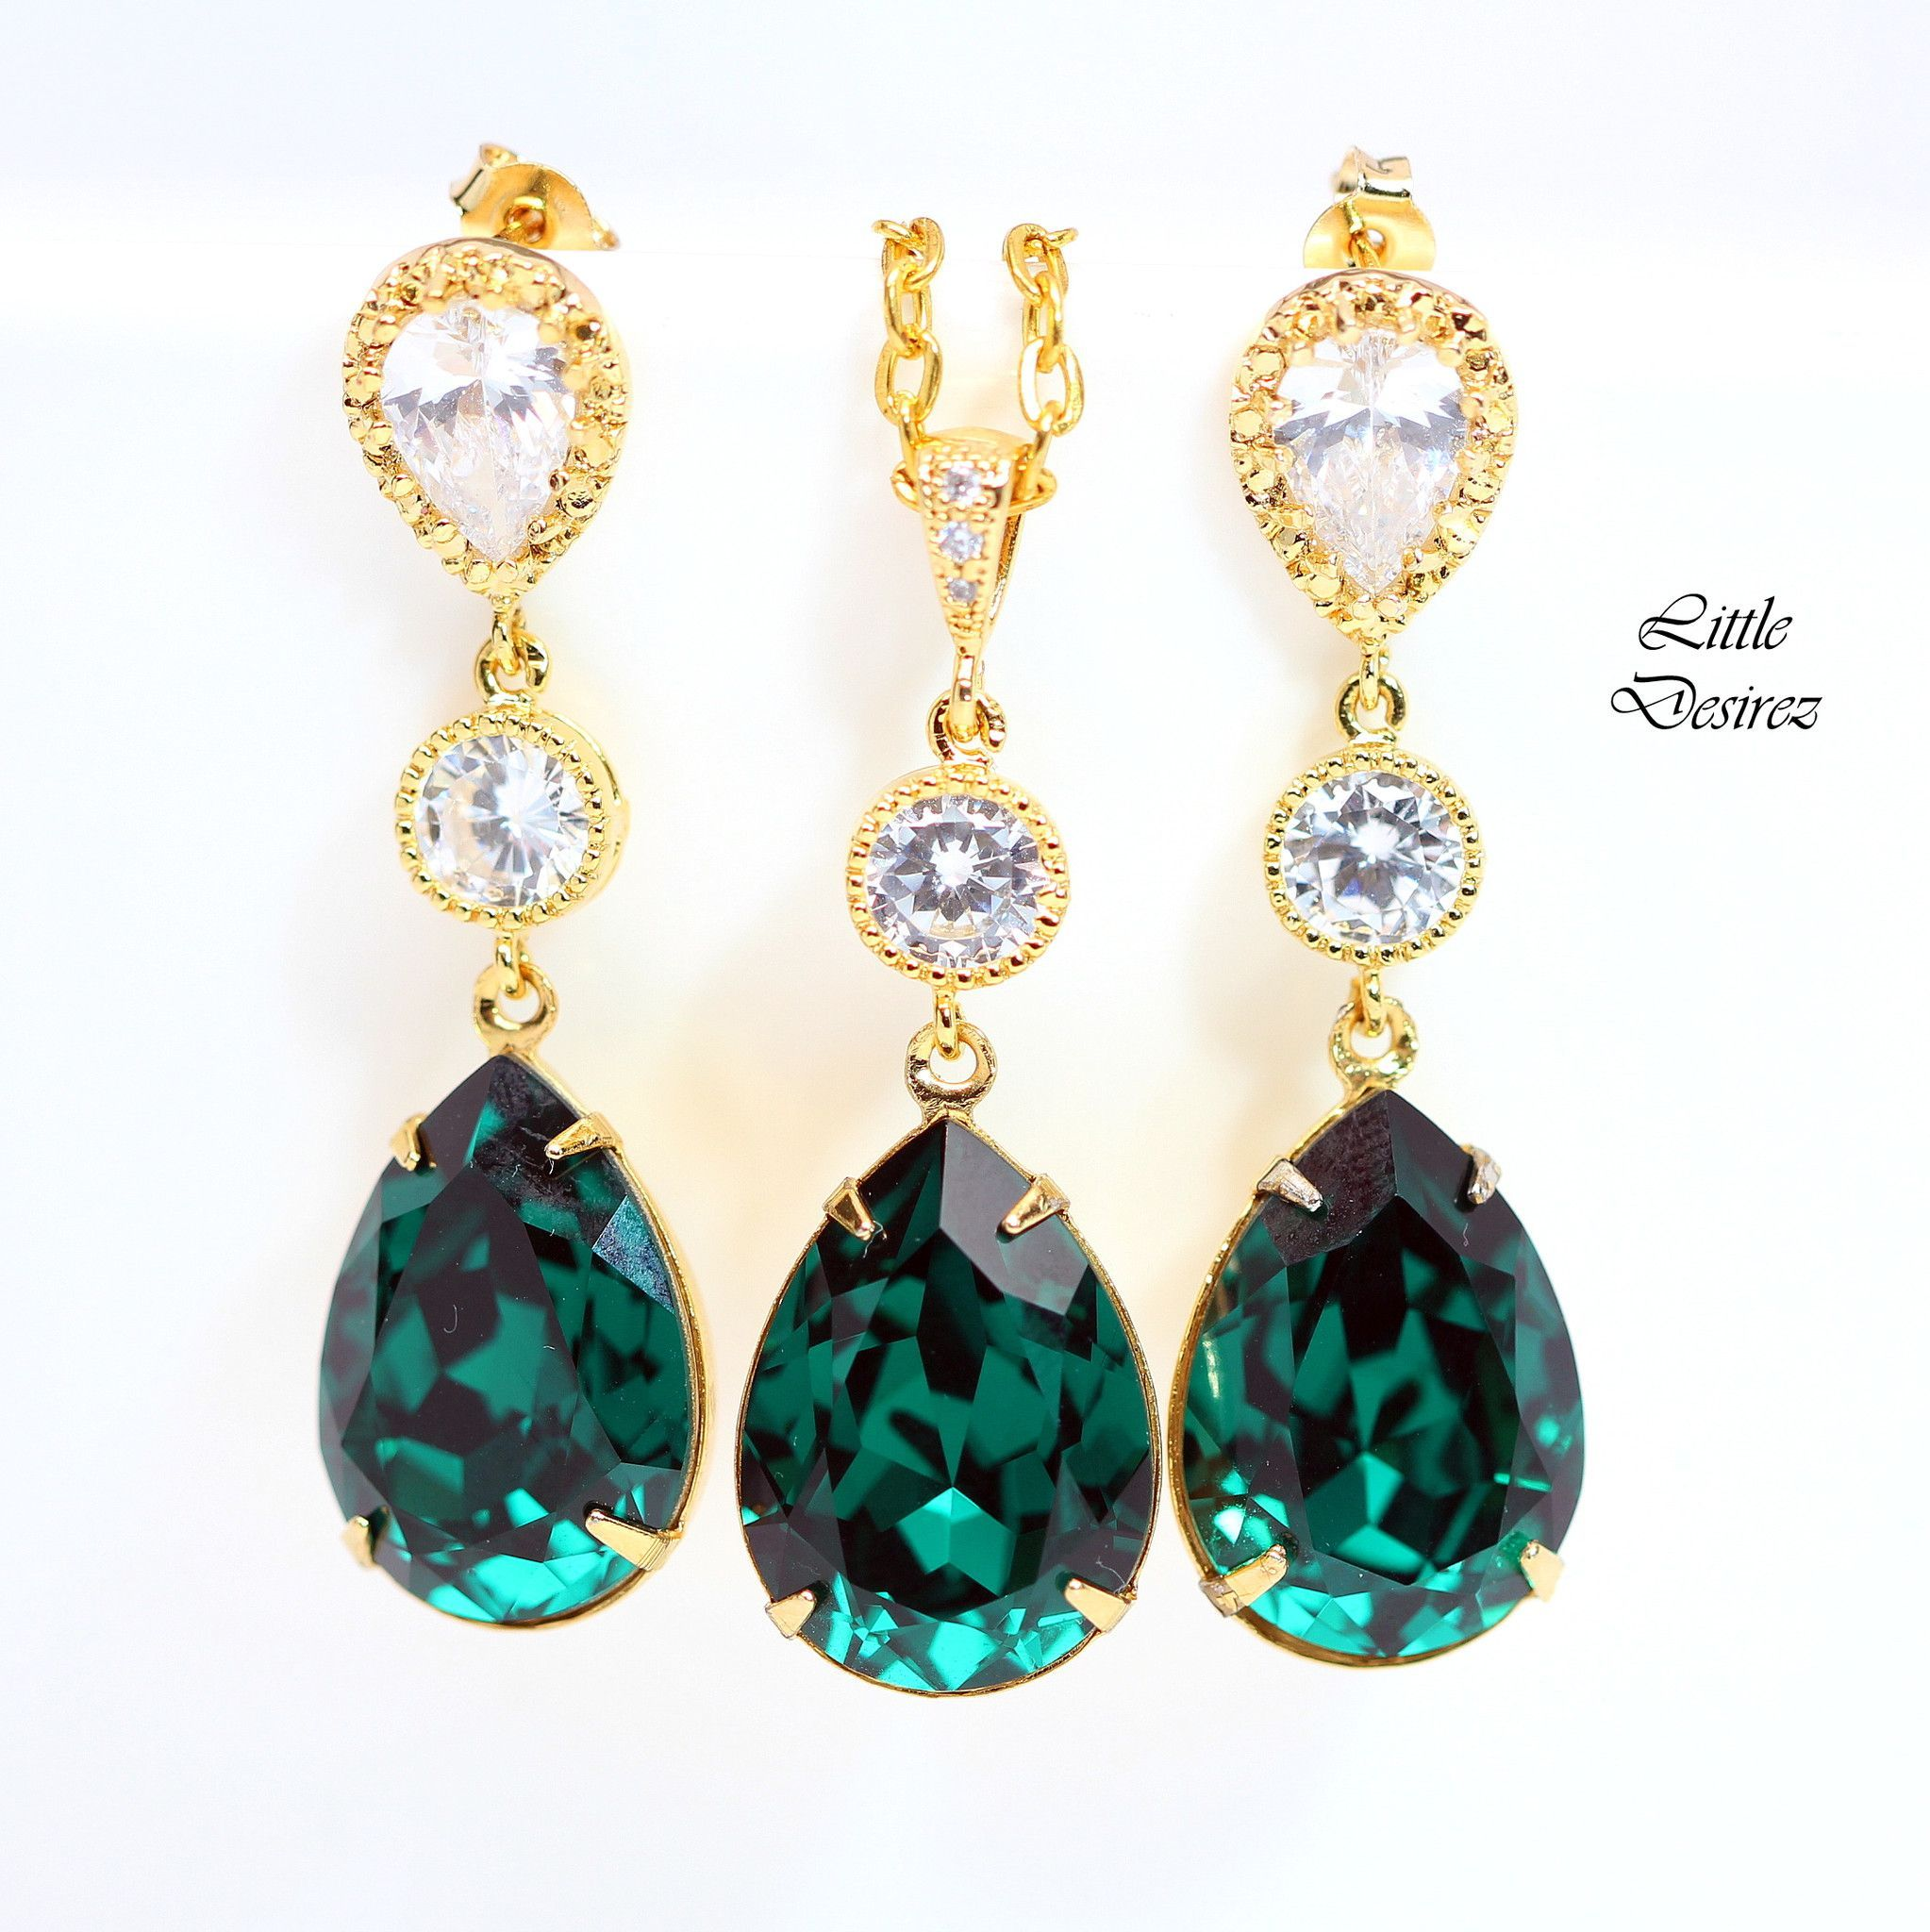 non gold earrings products west shipwreck of sophia jewellery blue key mount emerald in ct mel designer mounted emeraldreshootsoctearrings